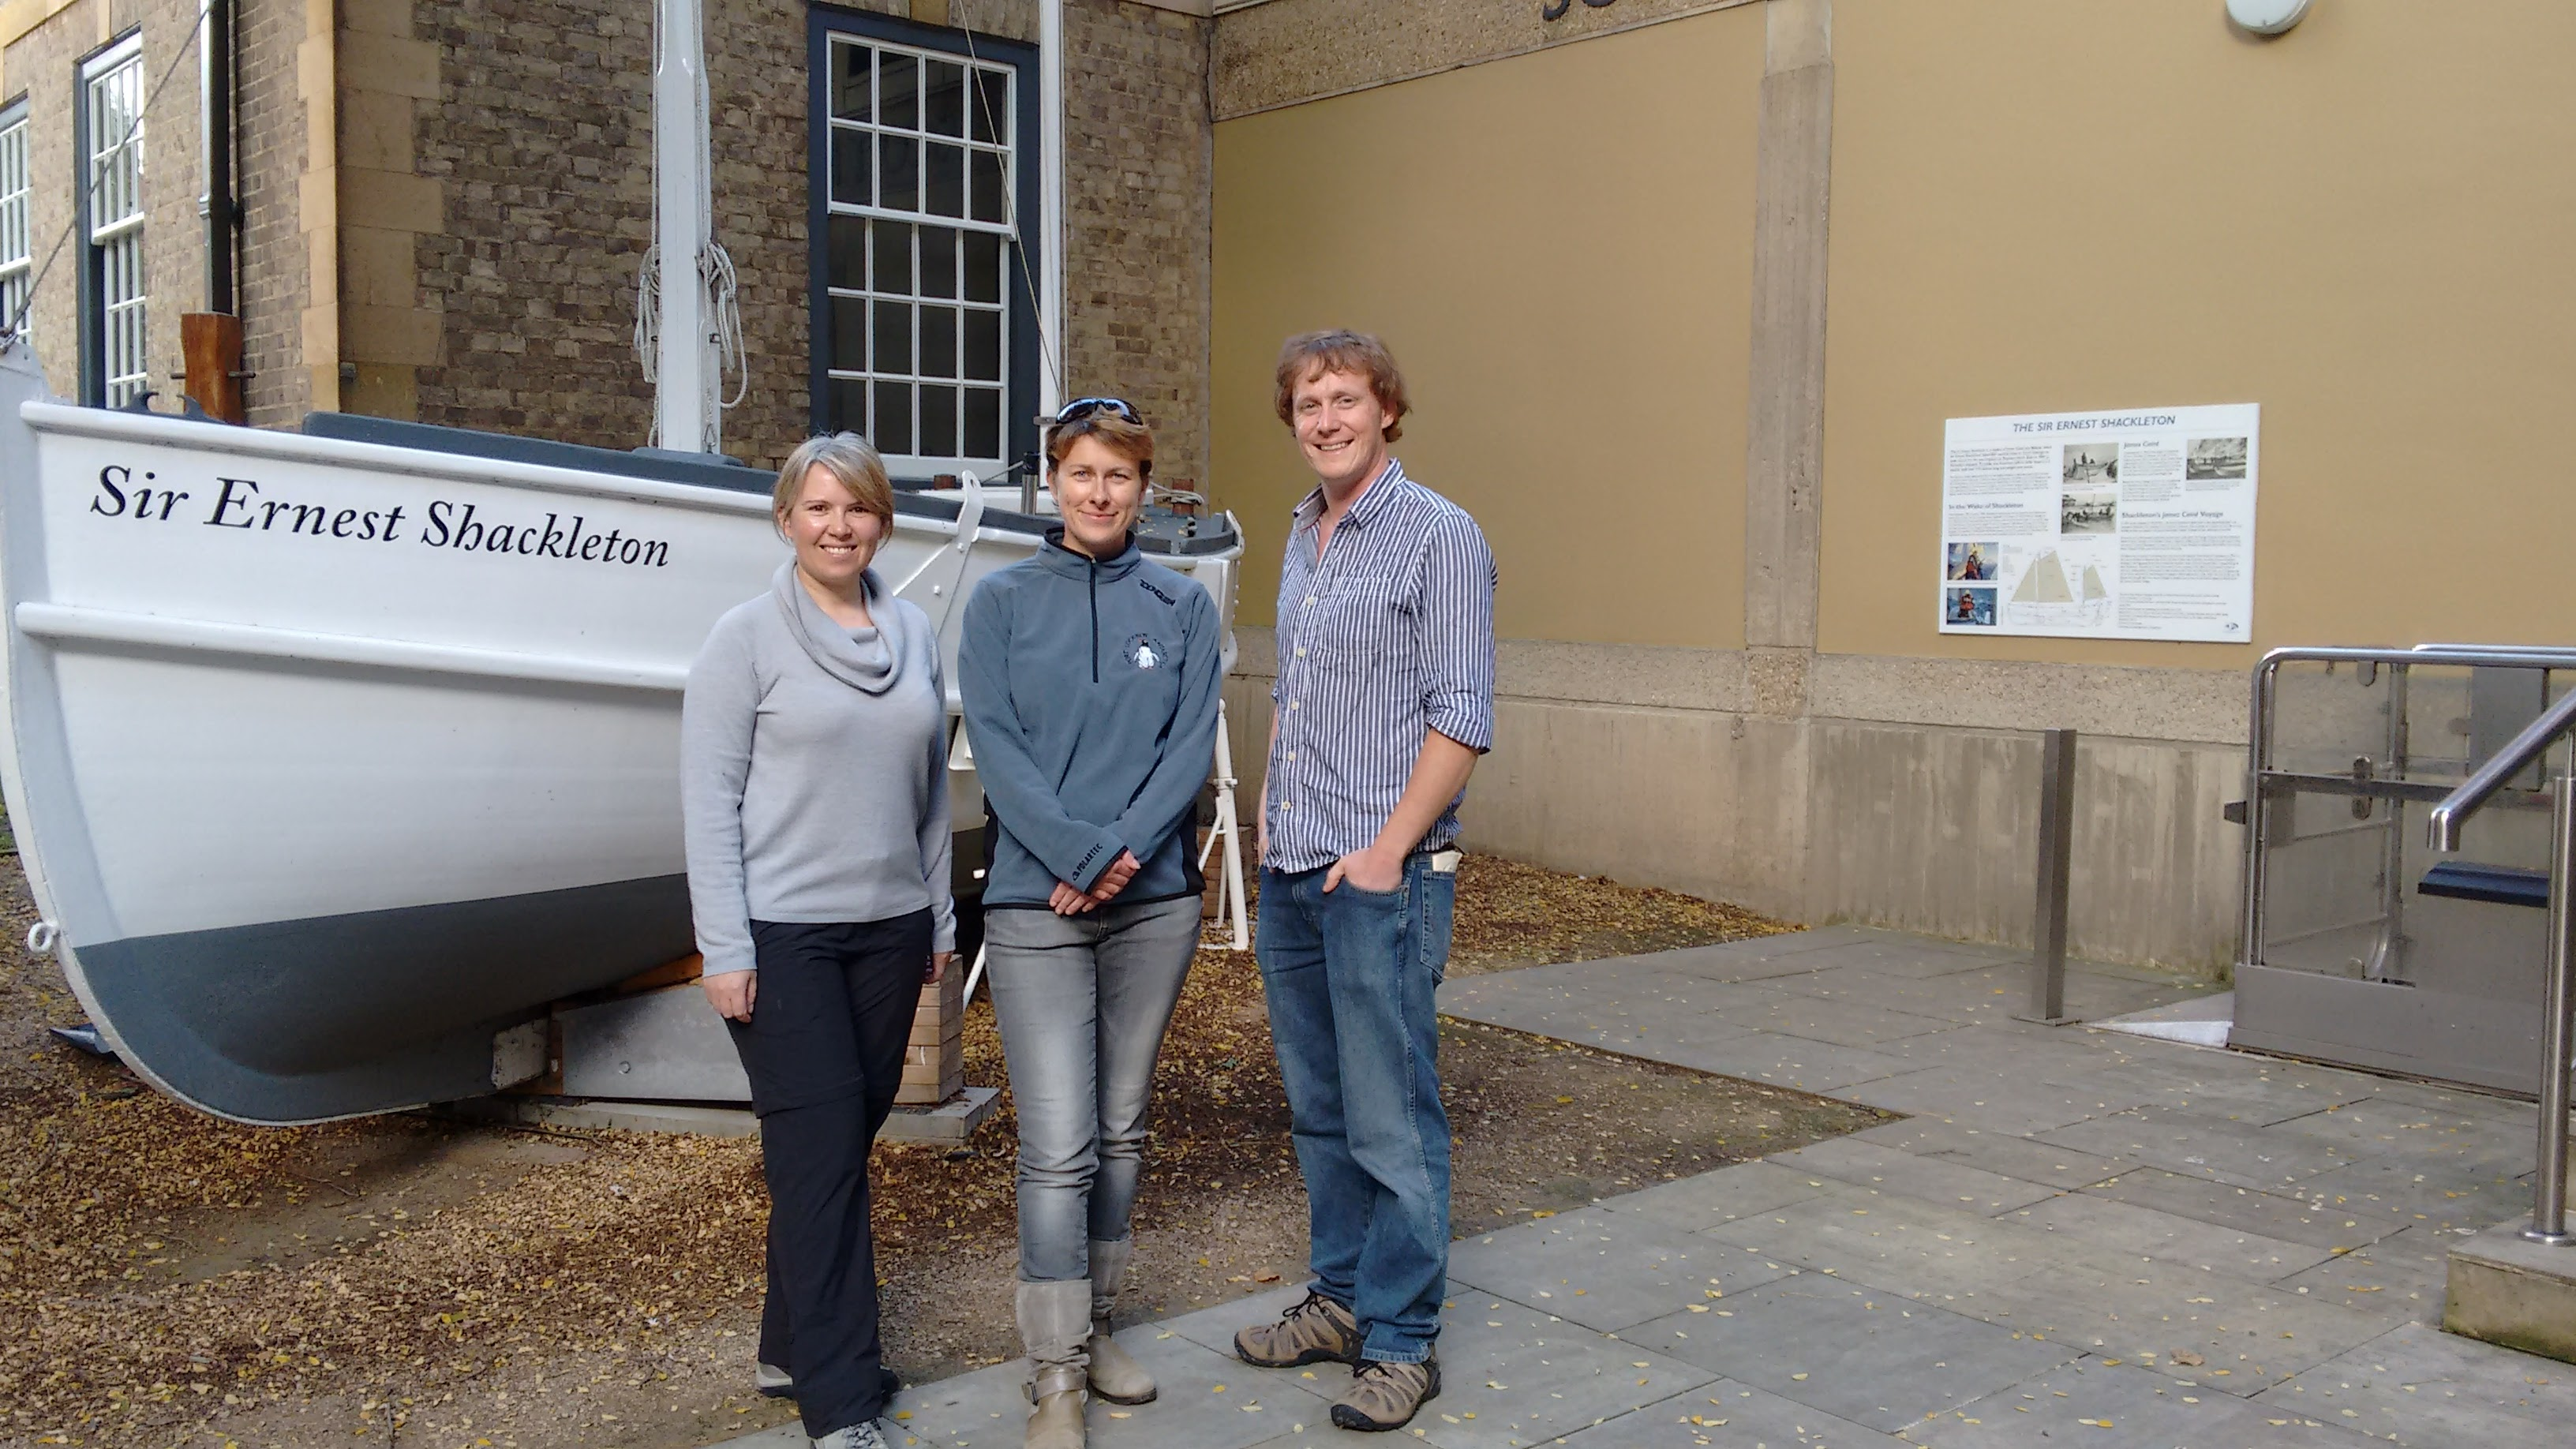 (left to right) Adele Jackson, Rachel Morris and Iain Pringle from this year's UKAHT team.